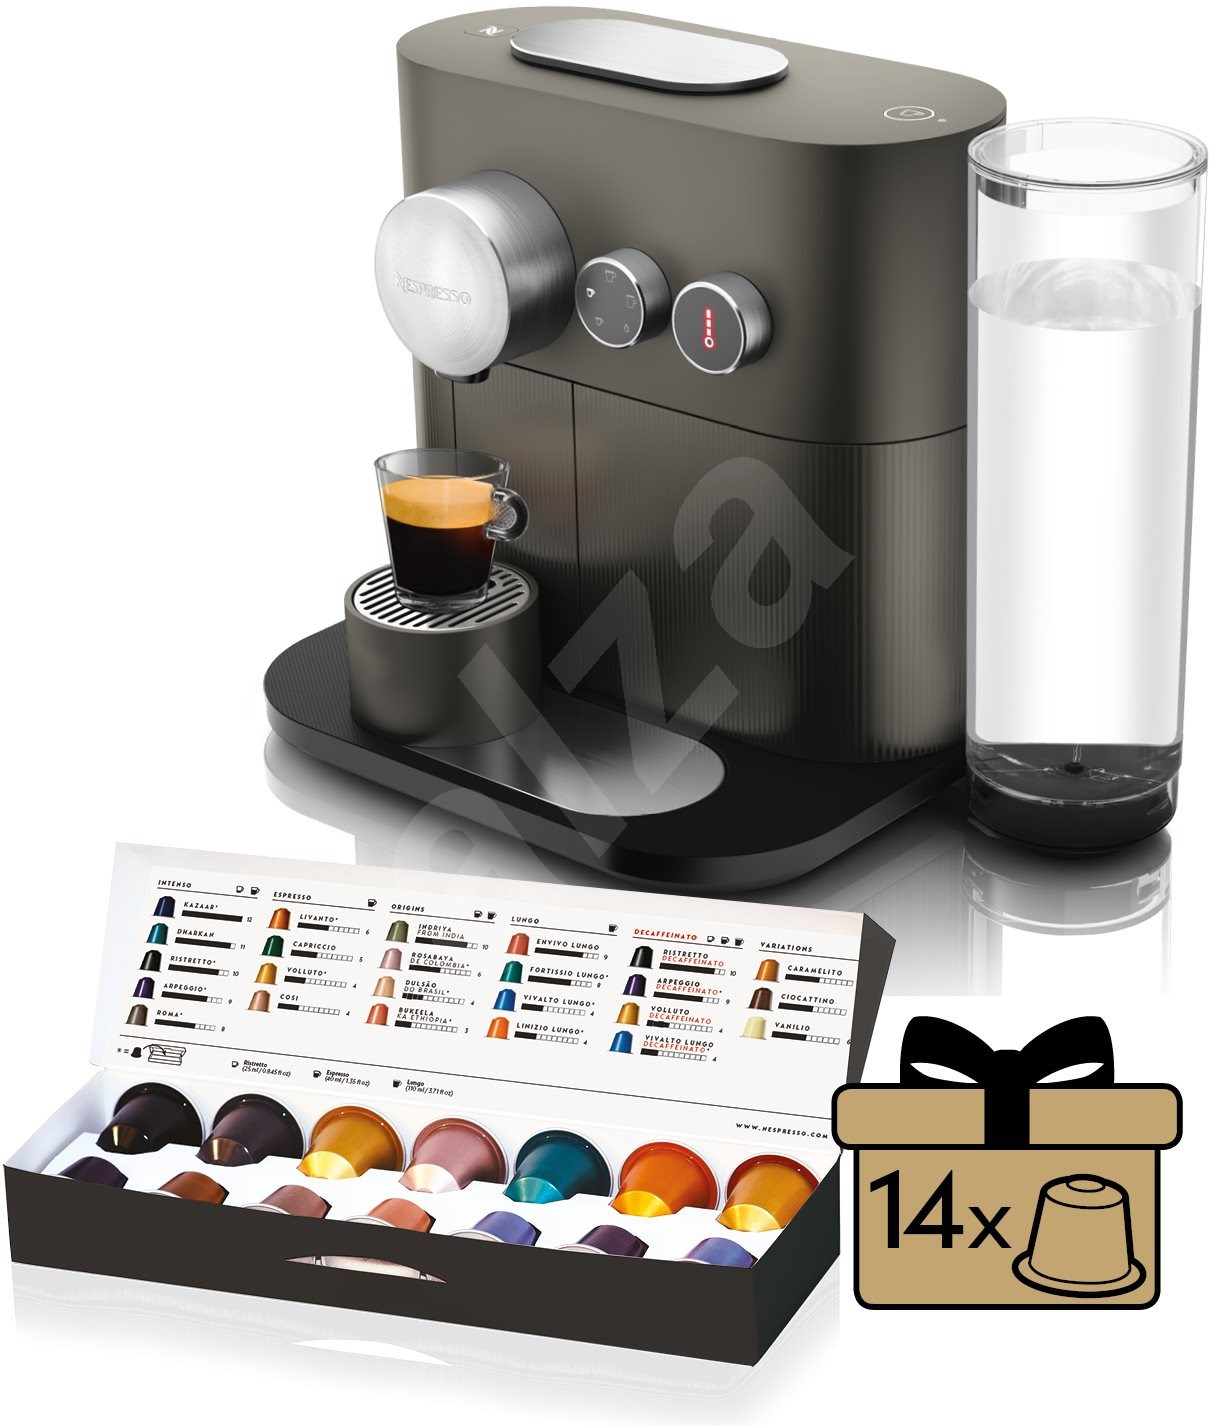 nespresso d longhi expert en350 g capsule coffee machine. Black Bedroom Furniture Sets. Home Design Ideas